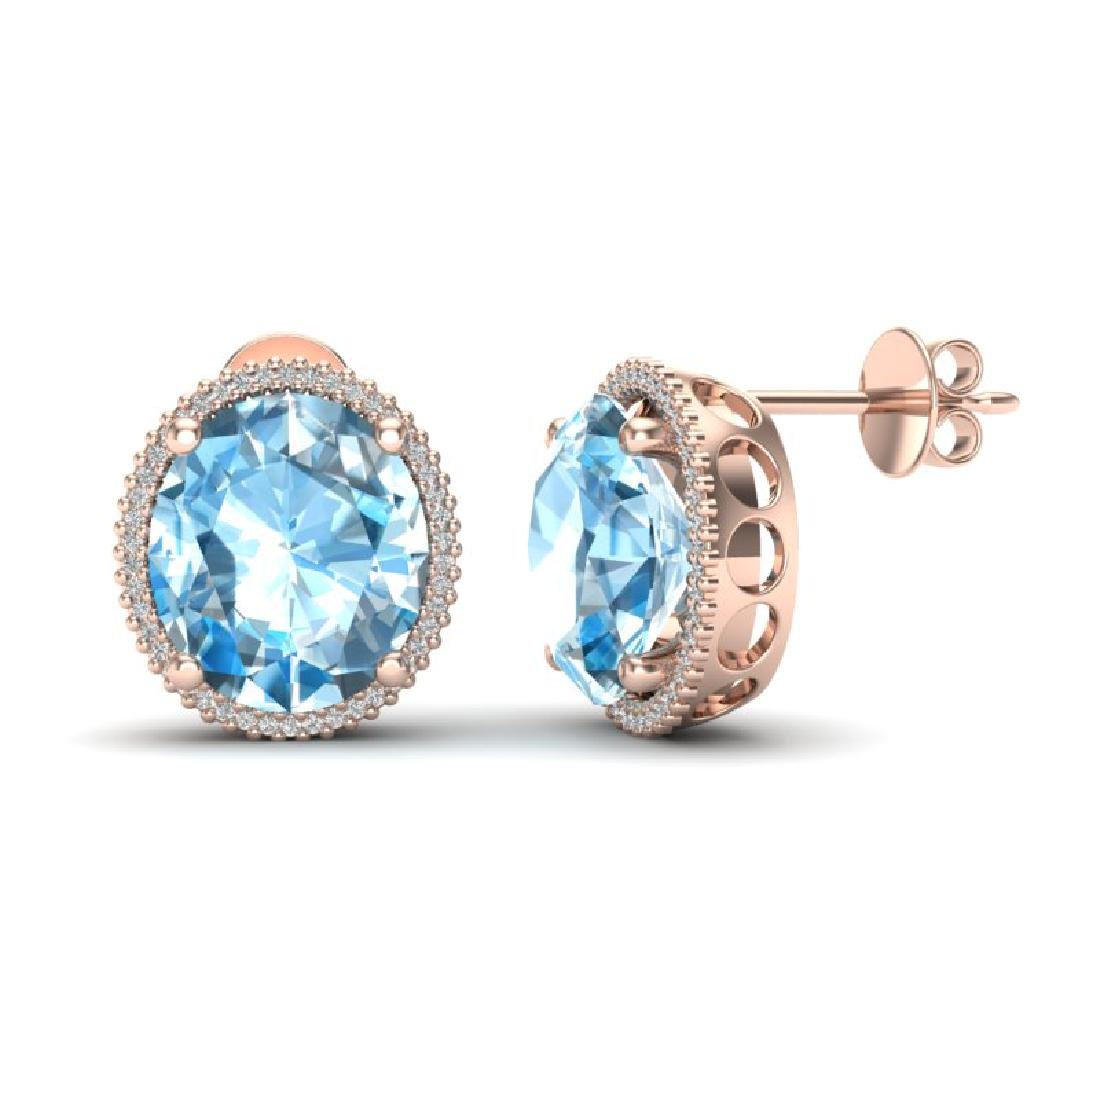 25 CTW Sky Blue Topaz & Micro VS/SI Diamond Halo - 2